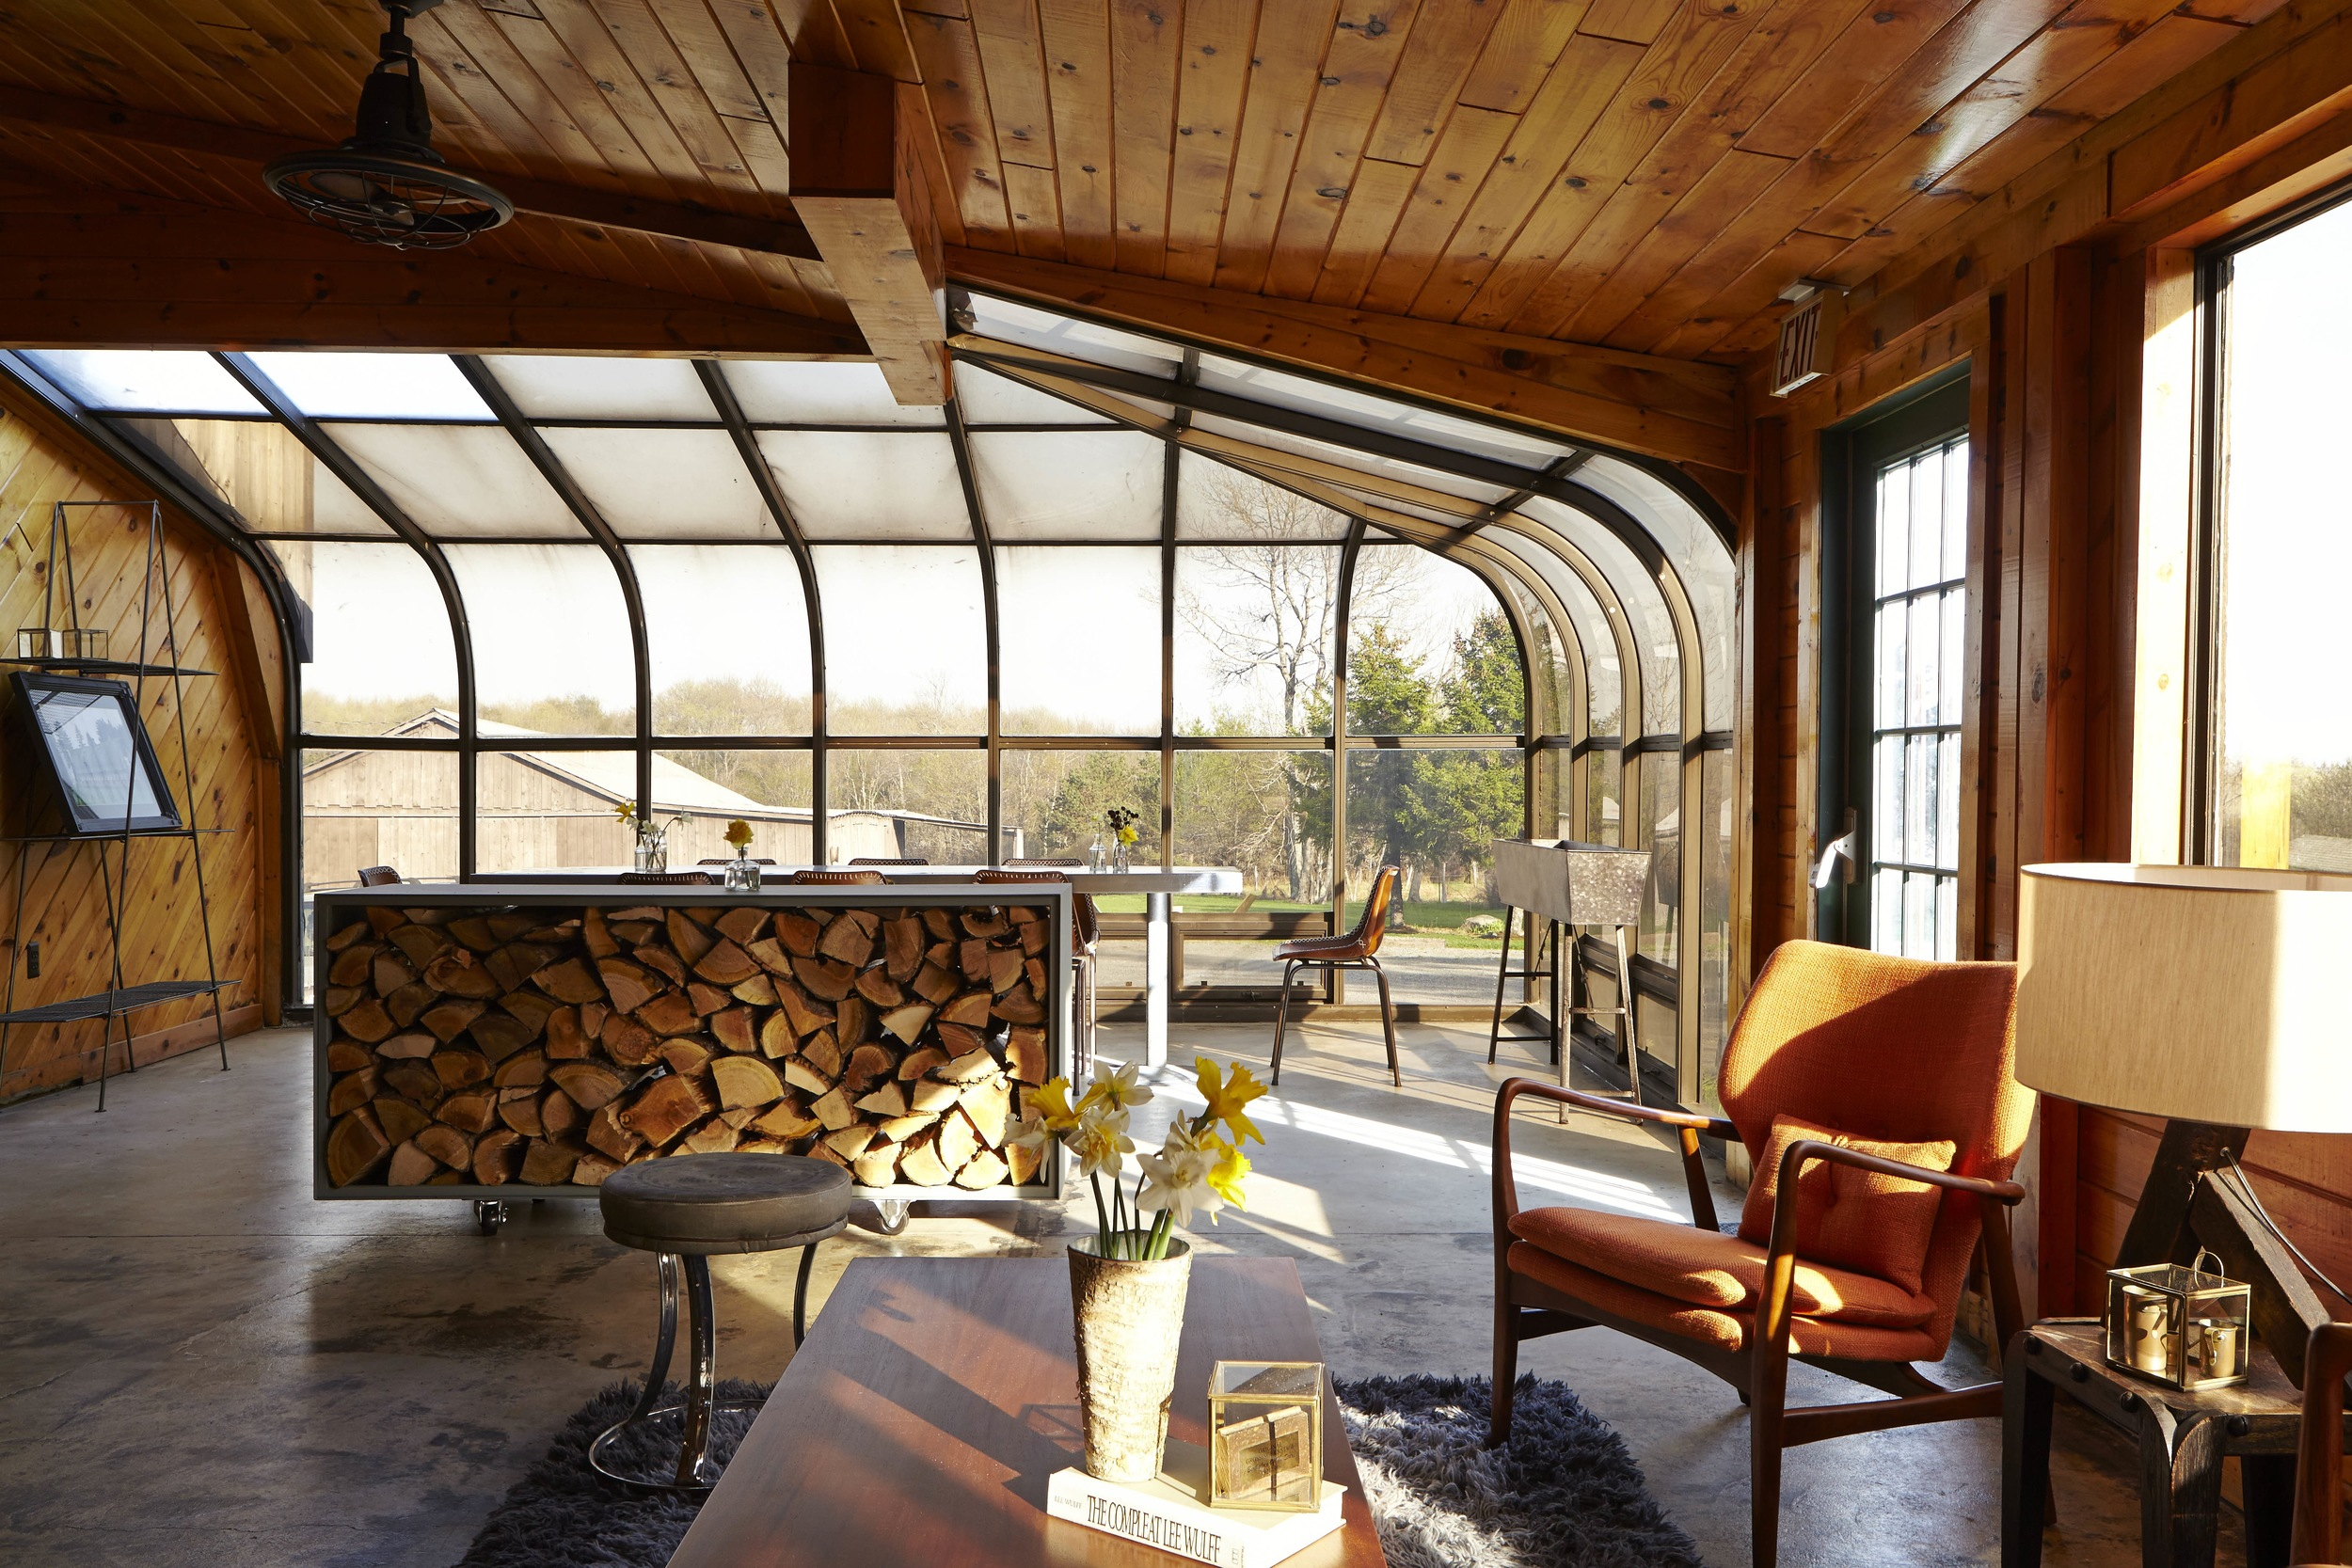 The Sunroom at The Arnold House